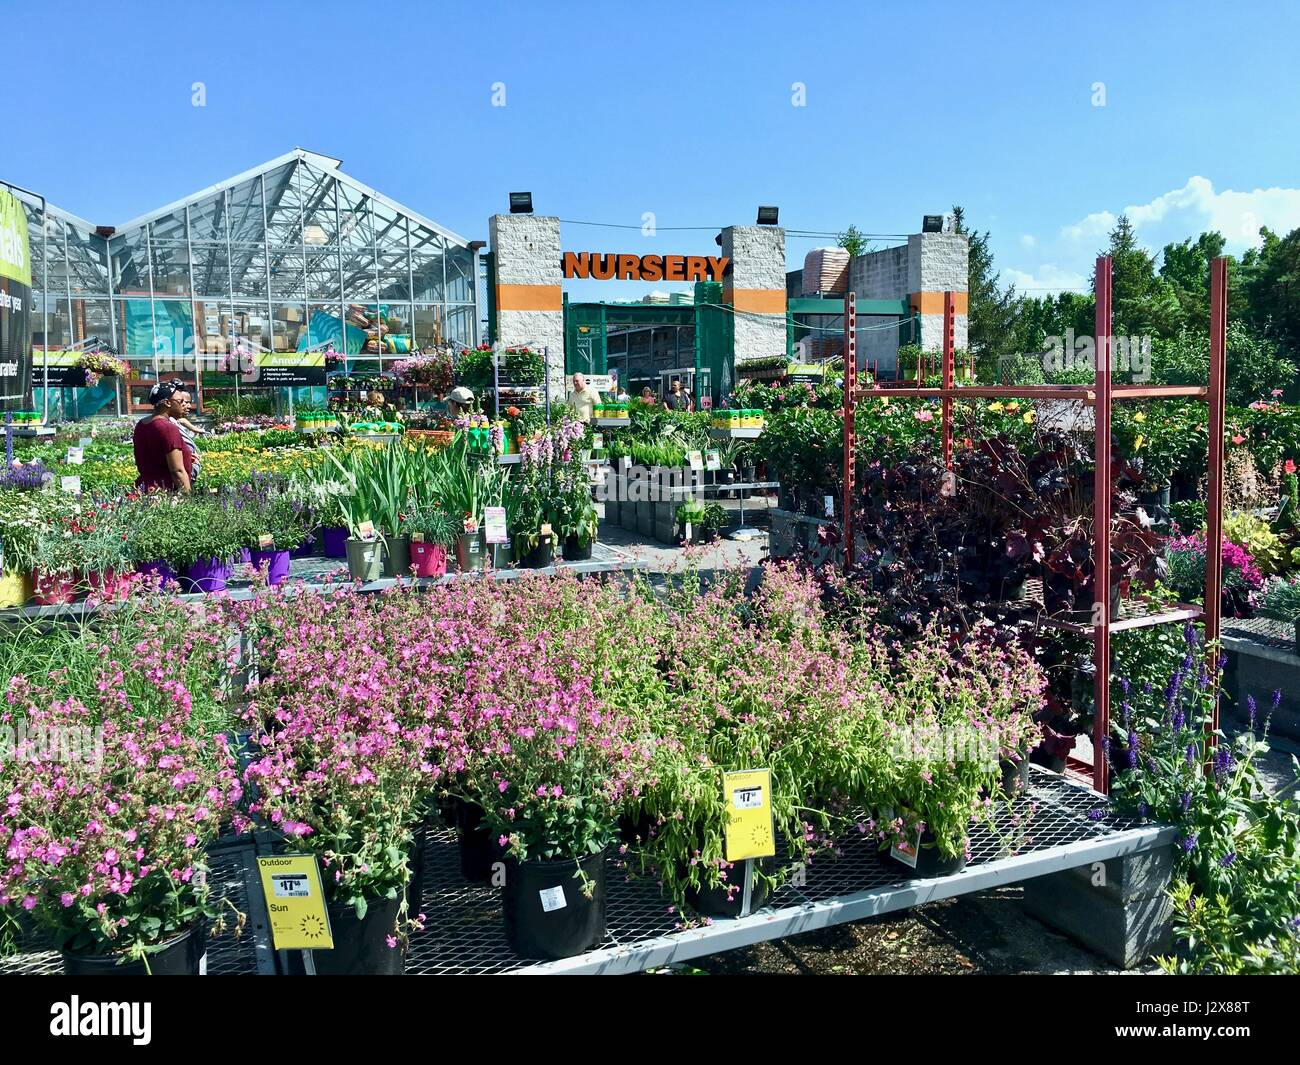 Home Depot Nursery Filled With Fresh Plants Flowers And